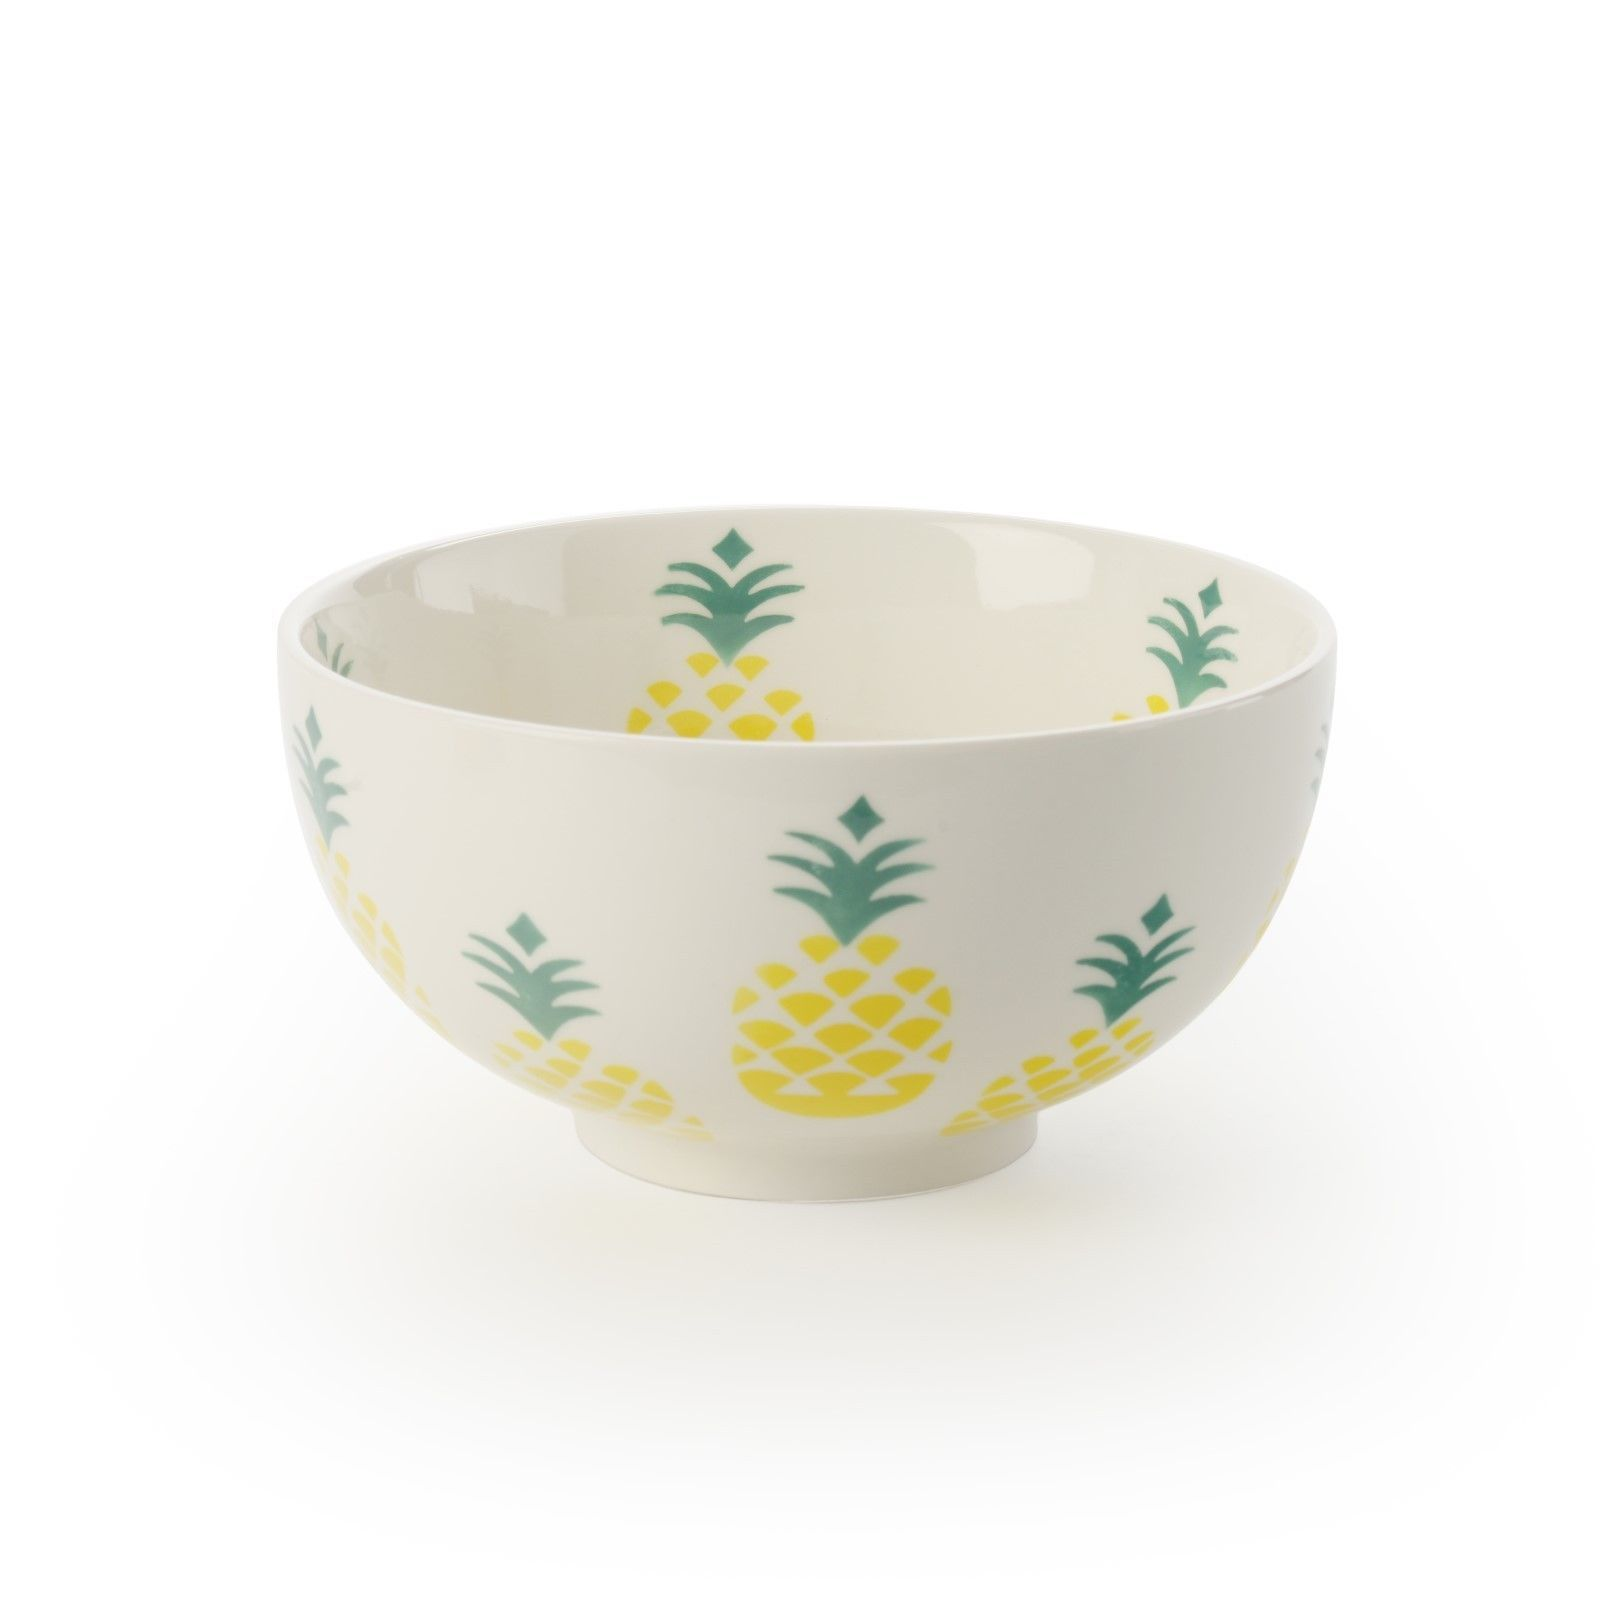 "Yellow Pineapple 6"" Snack, Fruit or Rice Bowls Set of 4 by Signature Housewares"